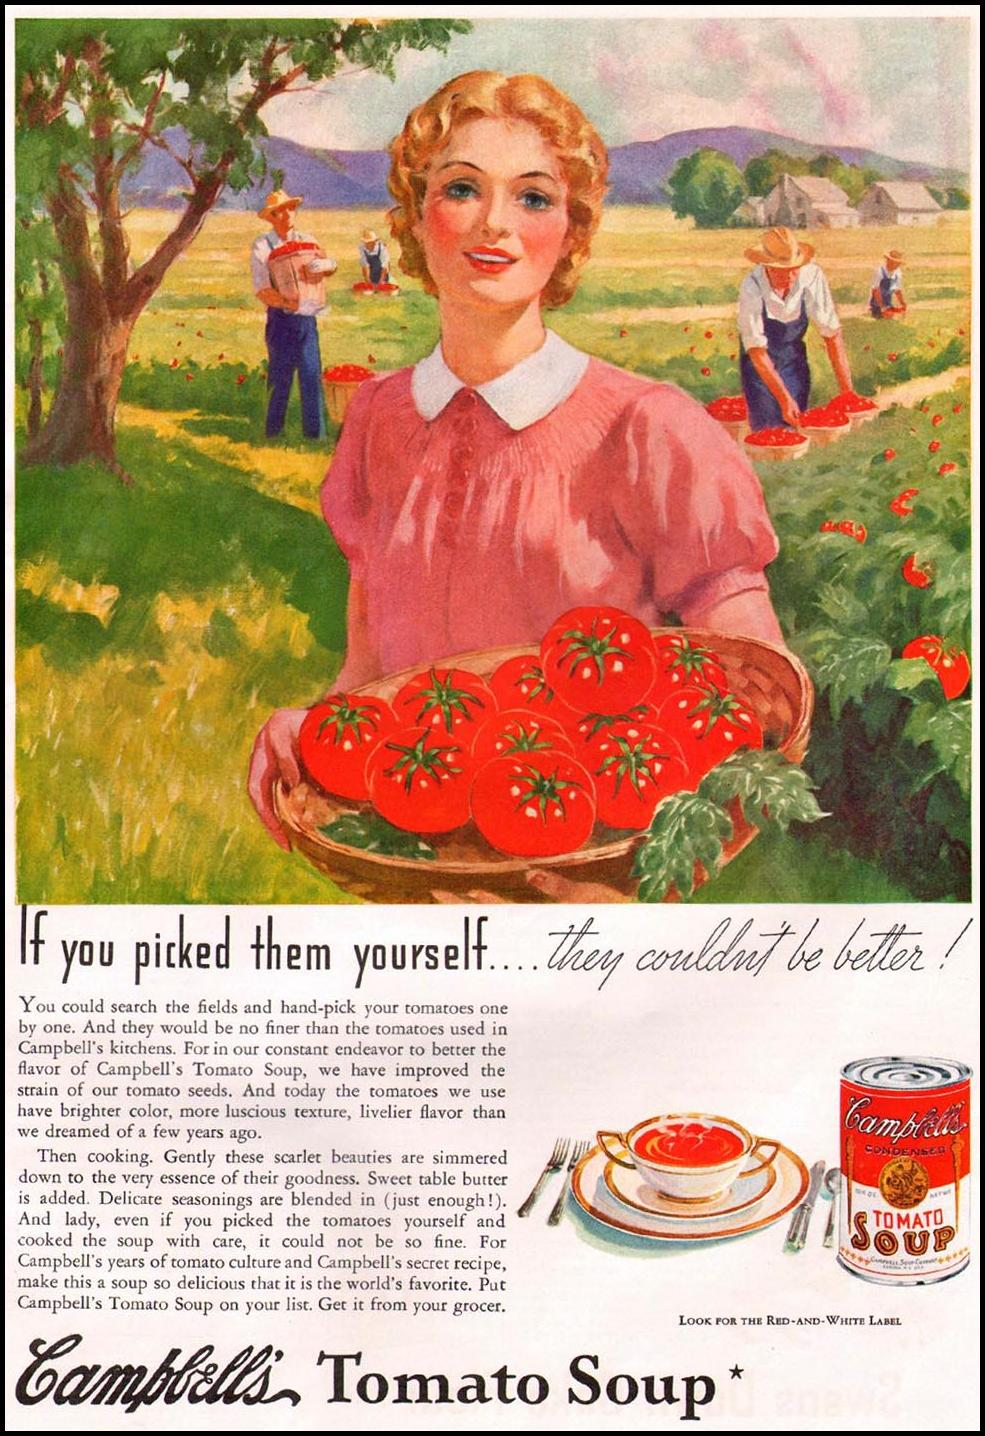 CAMPBELL'S TOMATO SOUP GOOD HOUSEKEEPING 12/01/1935